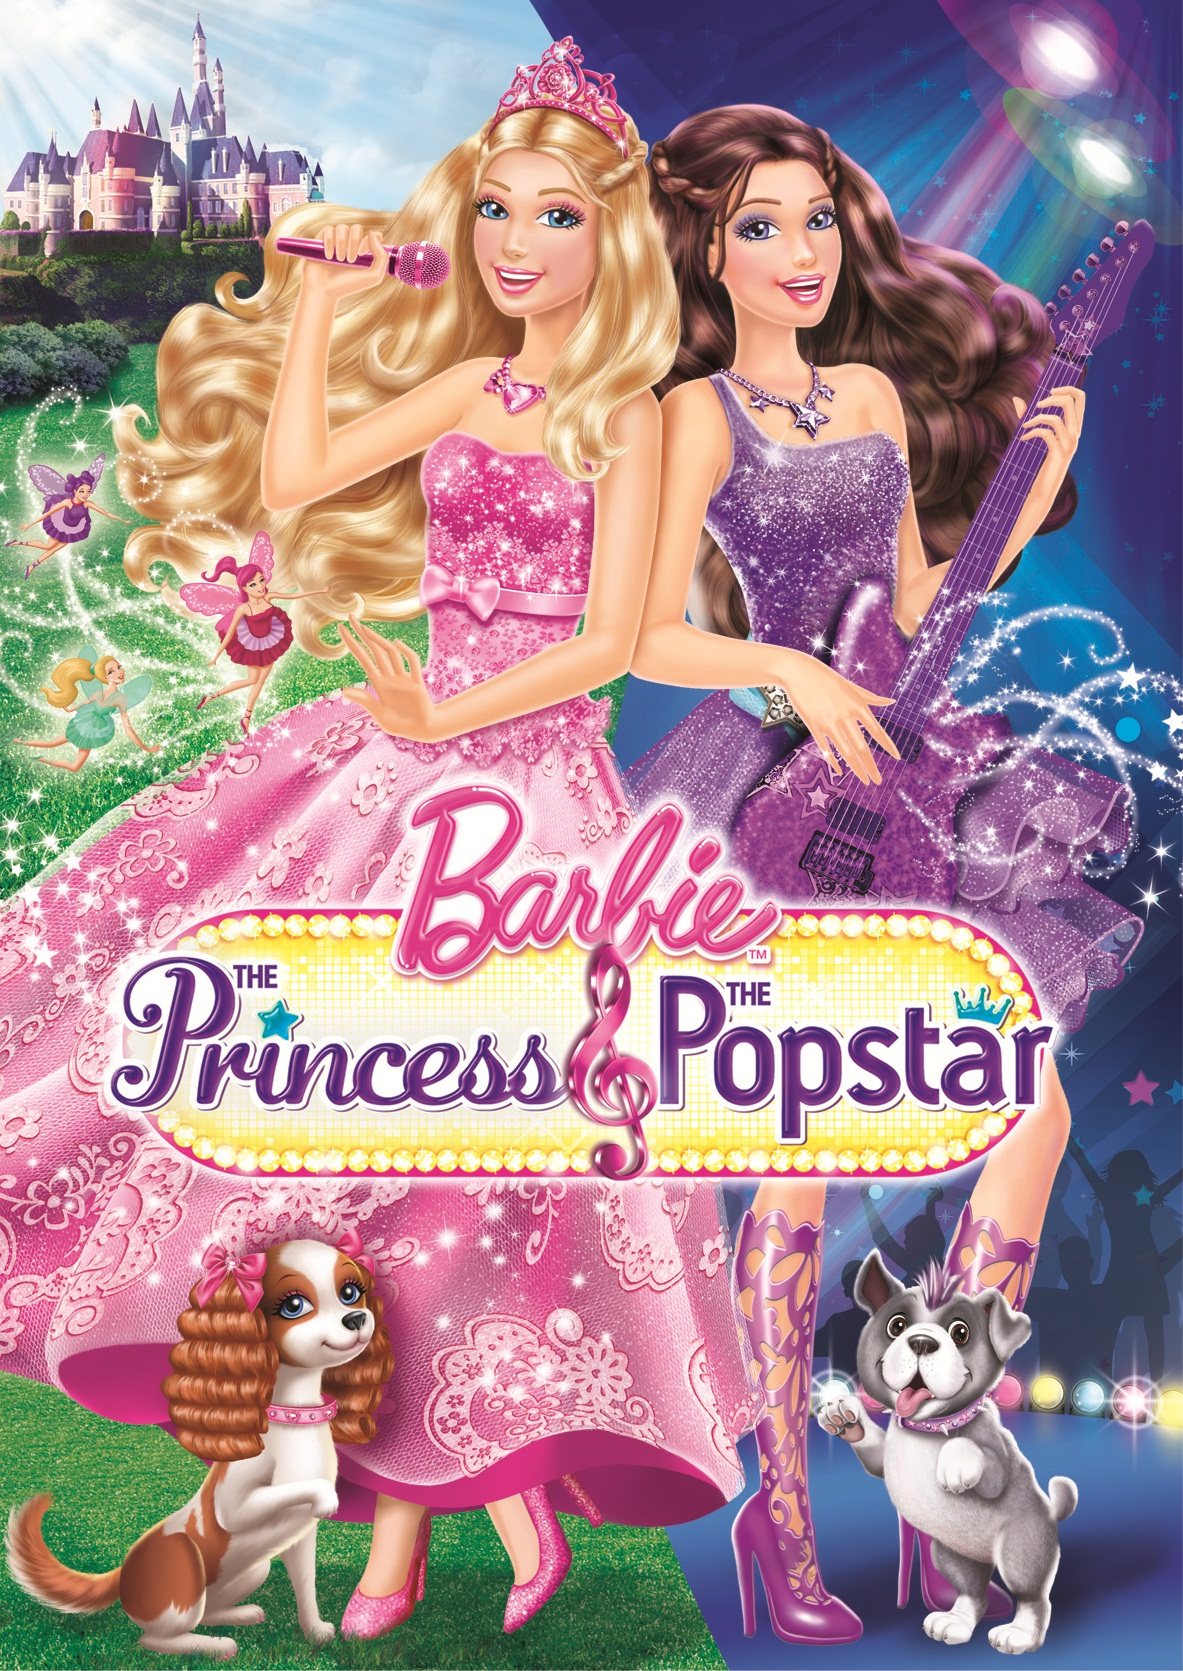 Barbie: The Princess & The Popstar - Barbie Movies Wiki - ''The Wiki